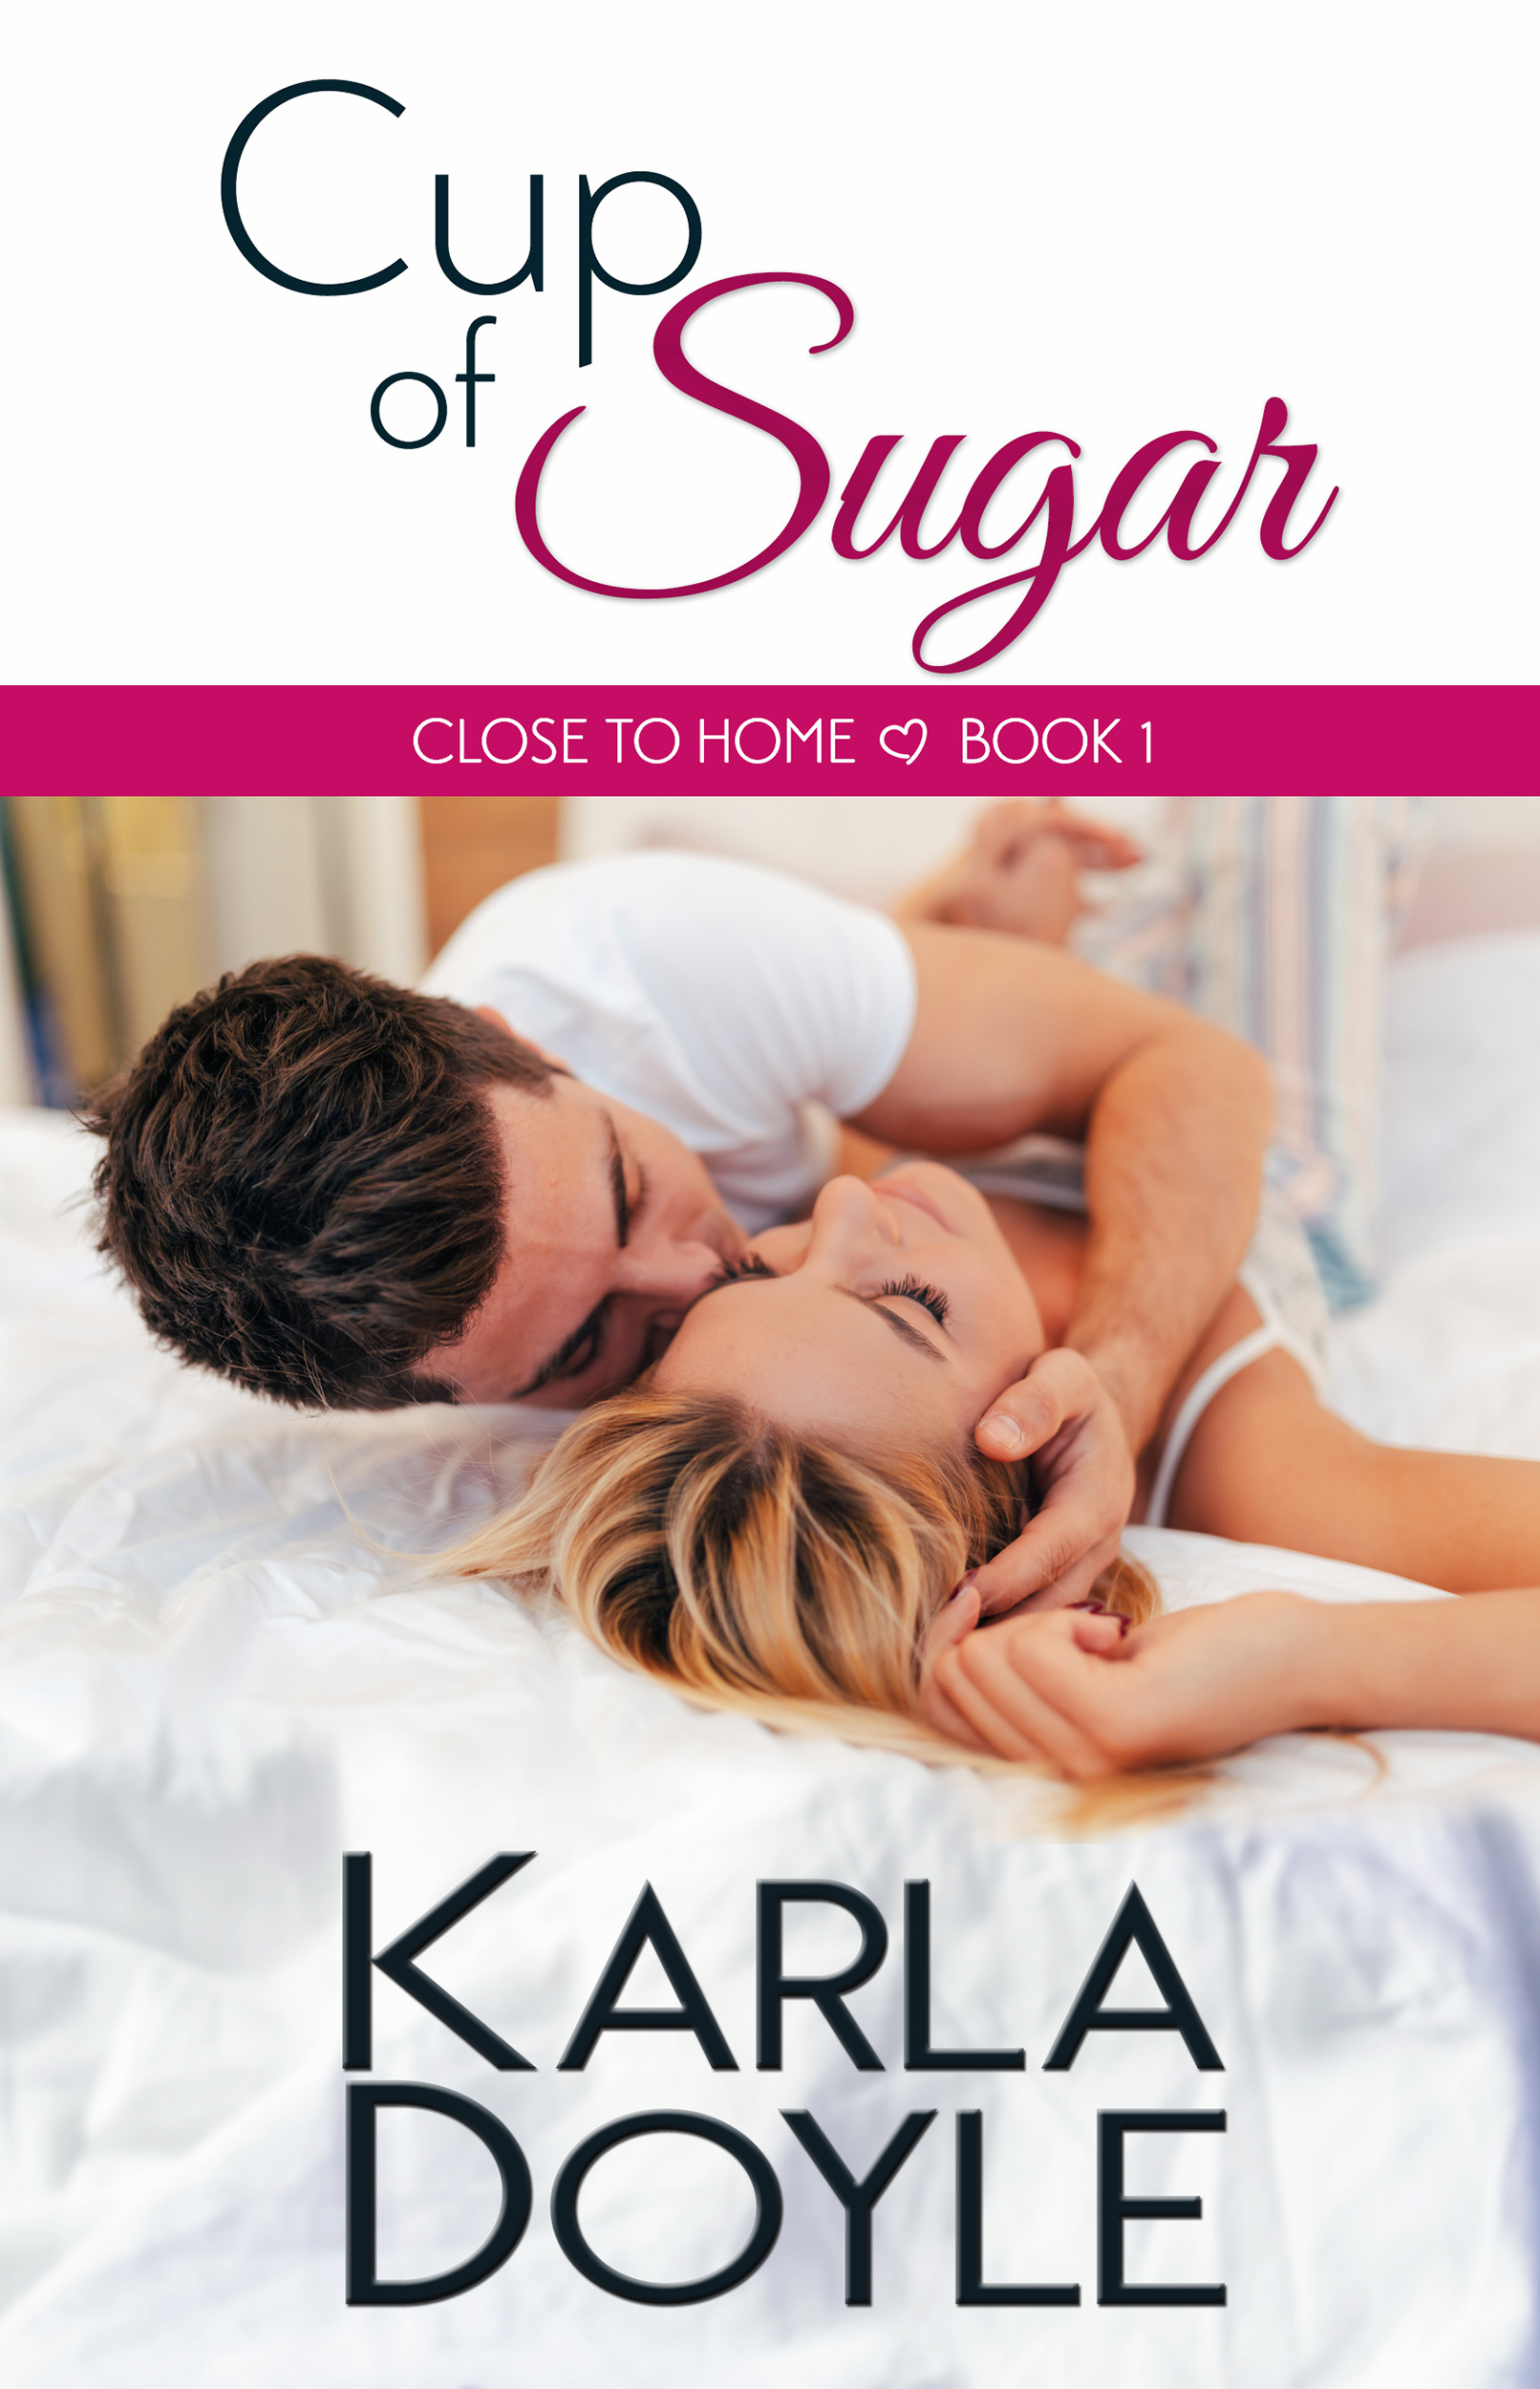 Cup of Sugar by Karla Doyle